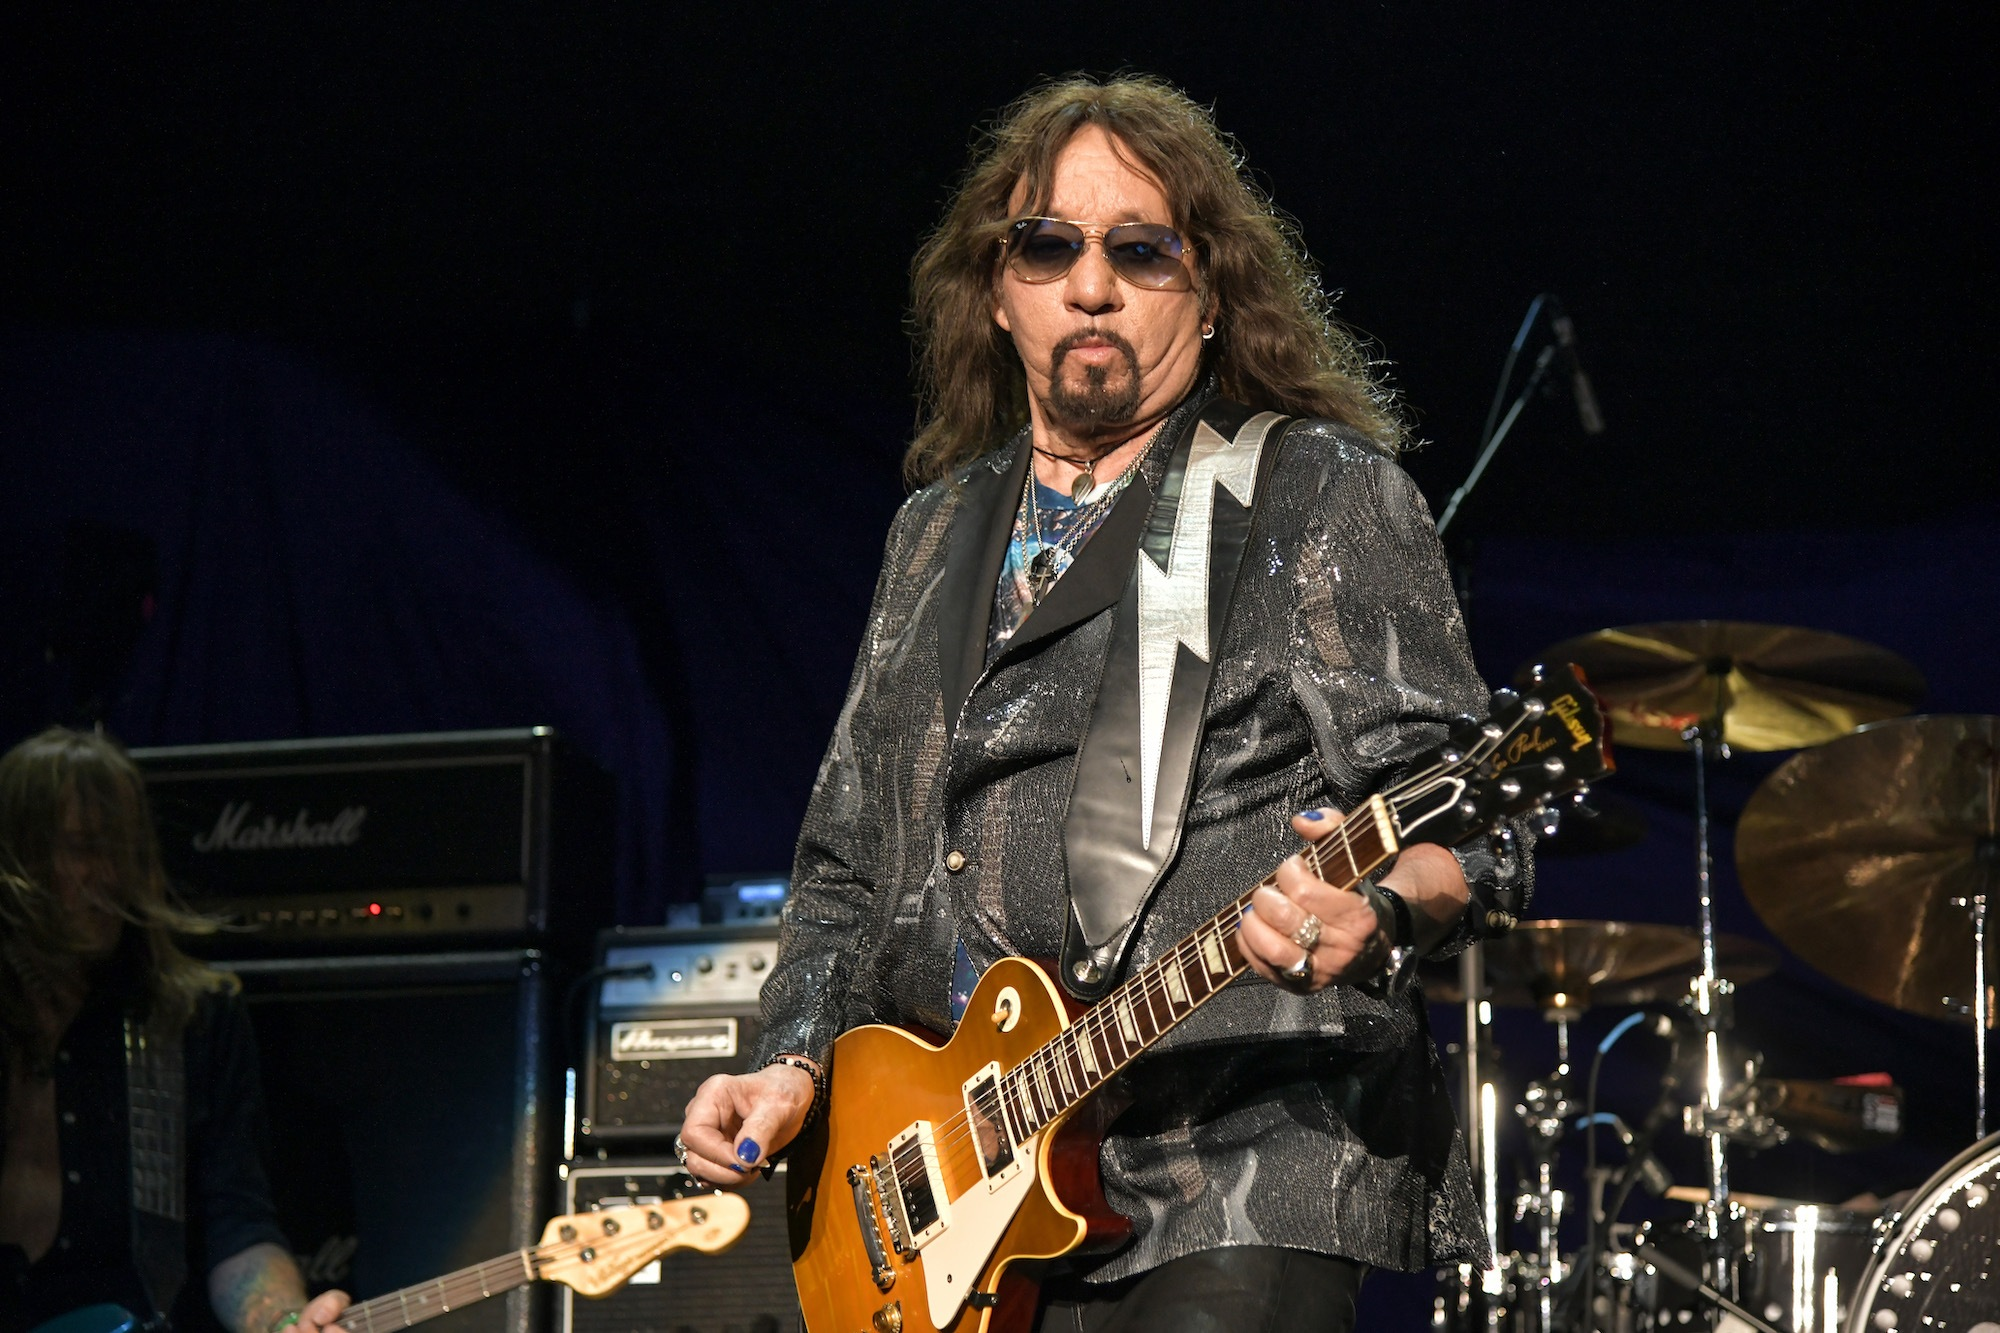 Ace Frehley Live at Huntington Bank Pavilion [GALLERY] 11